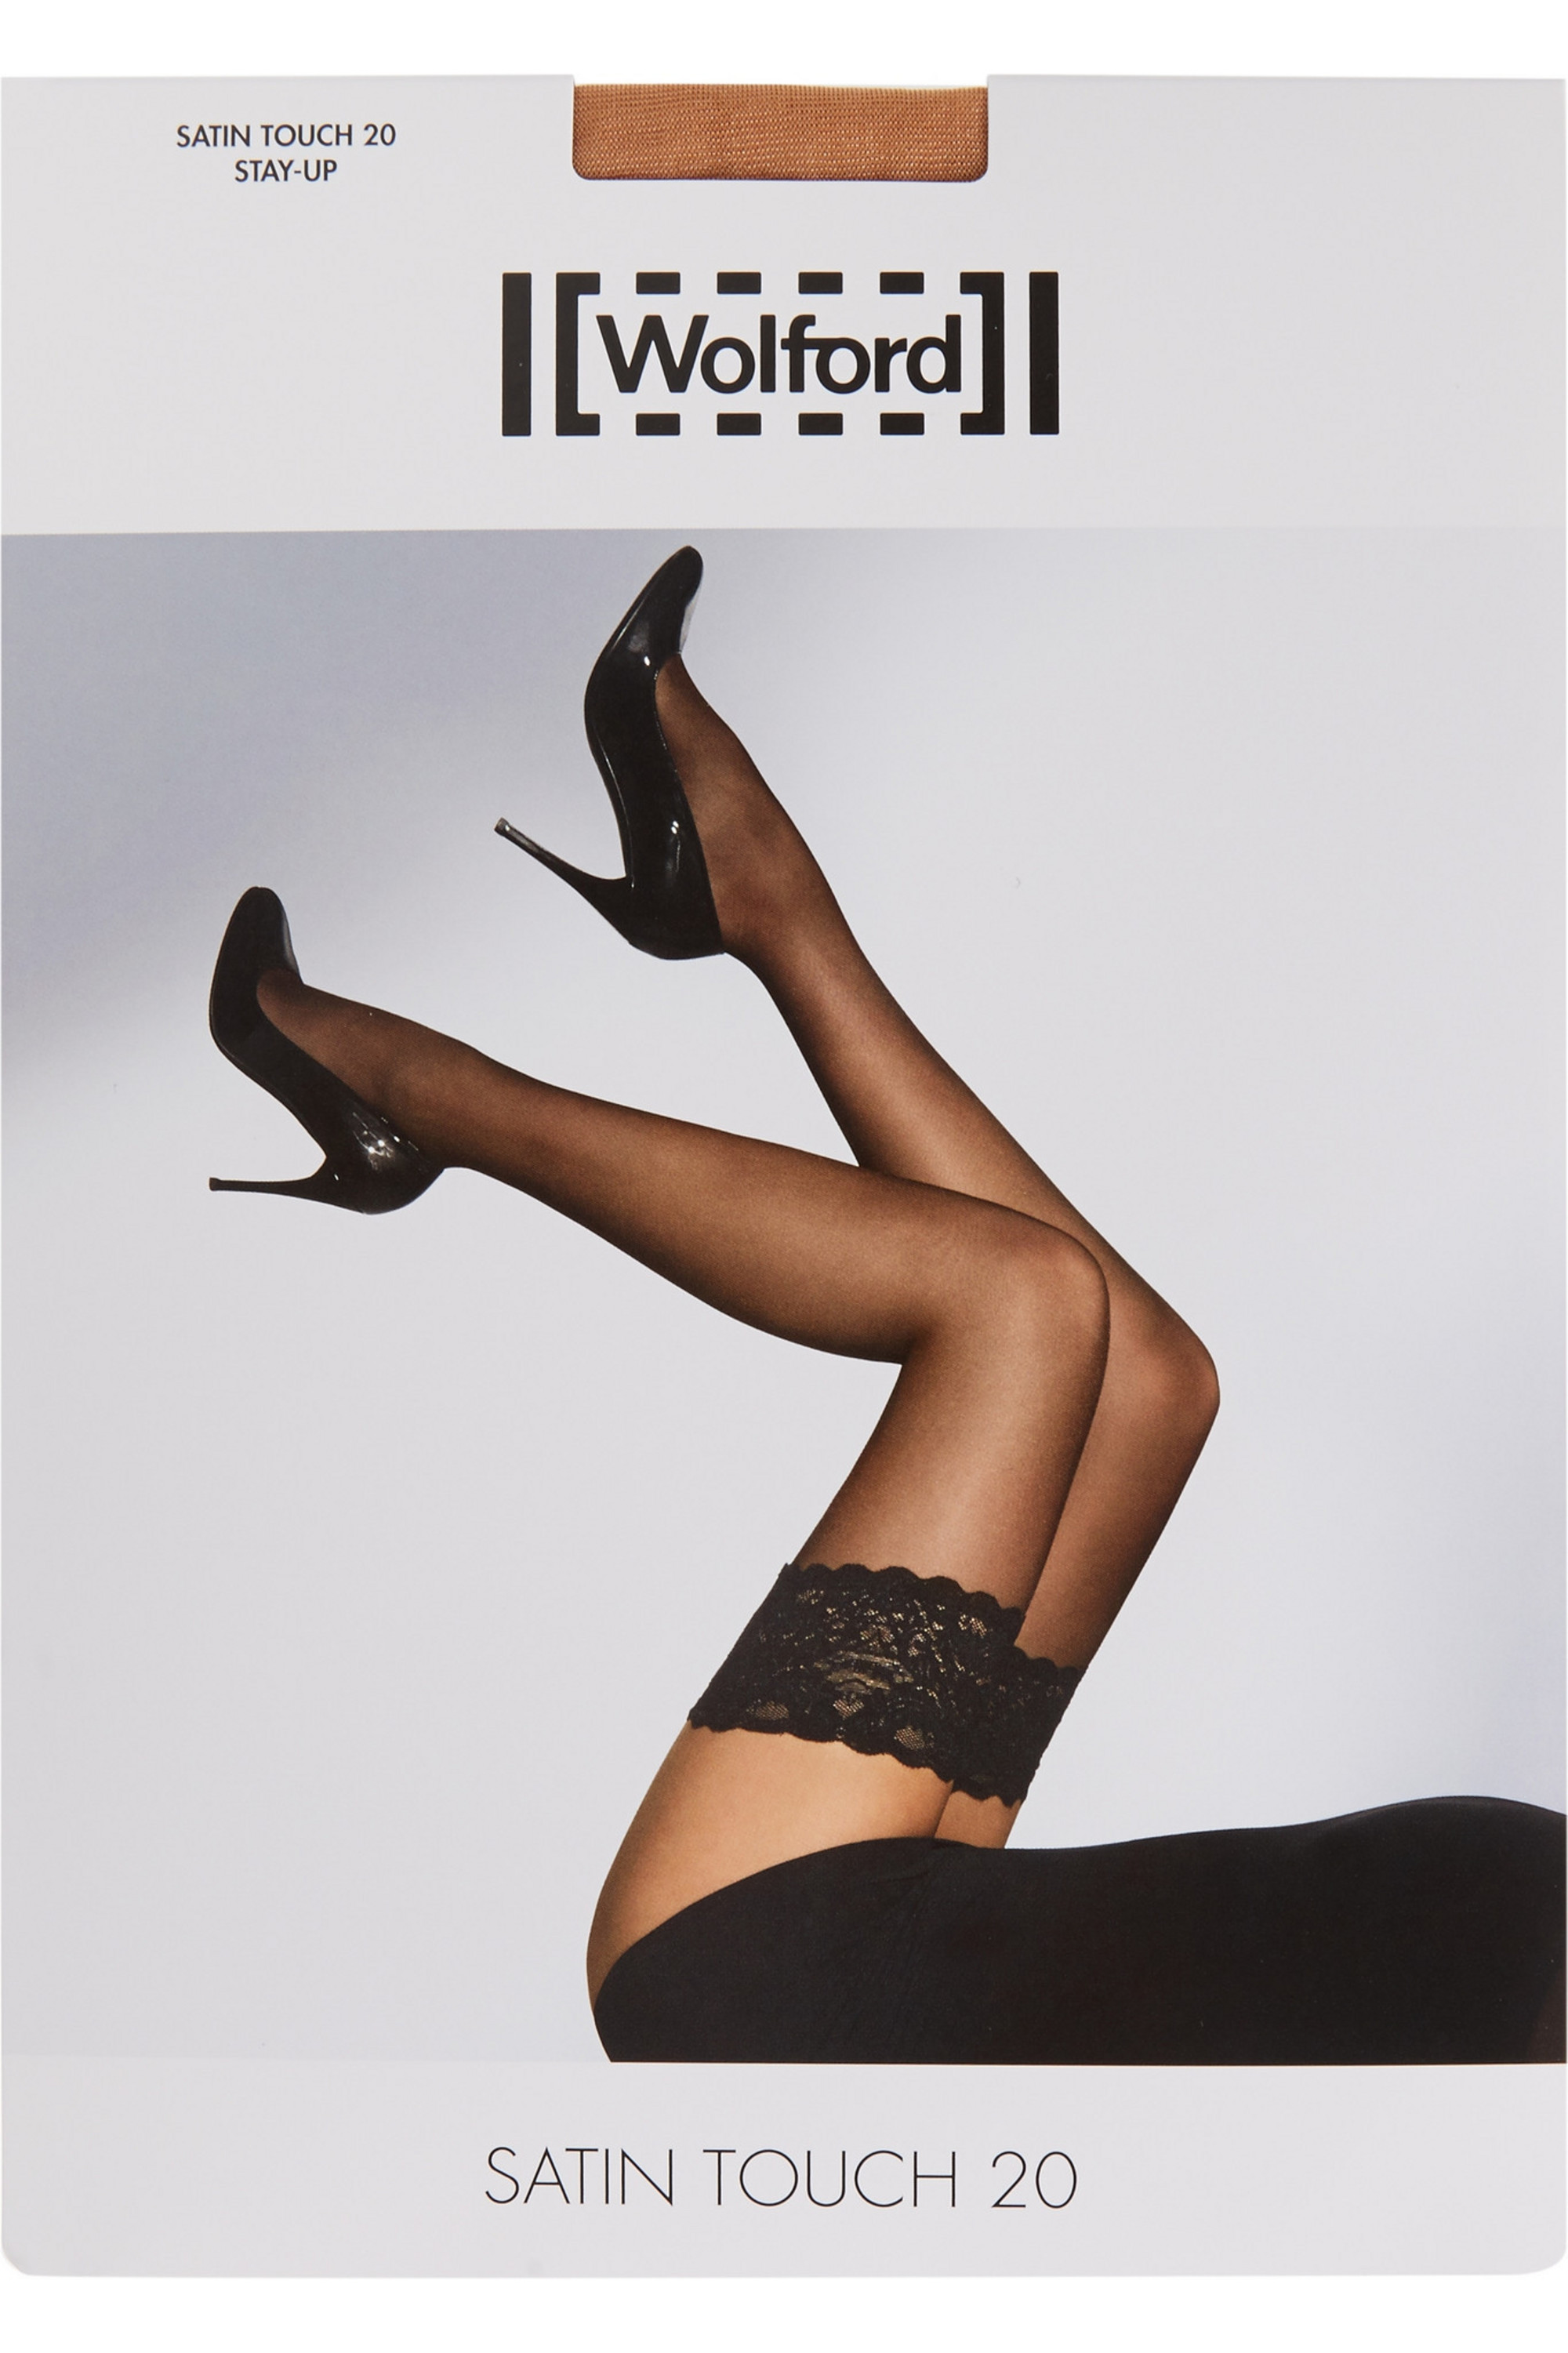 Wolford Satin Touch 20 denier stay-up stockings